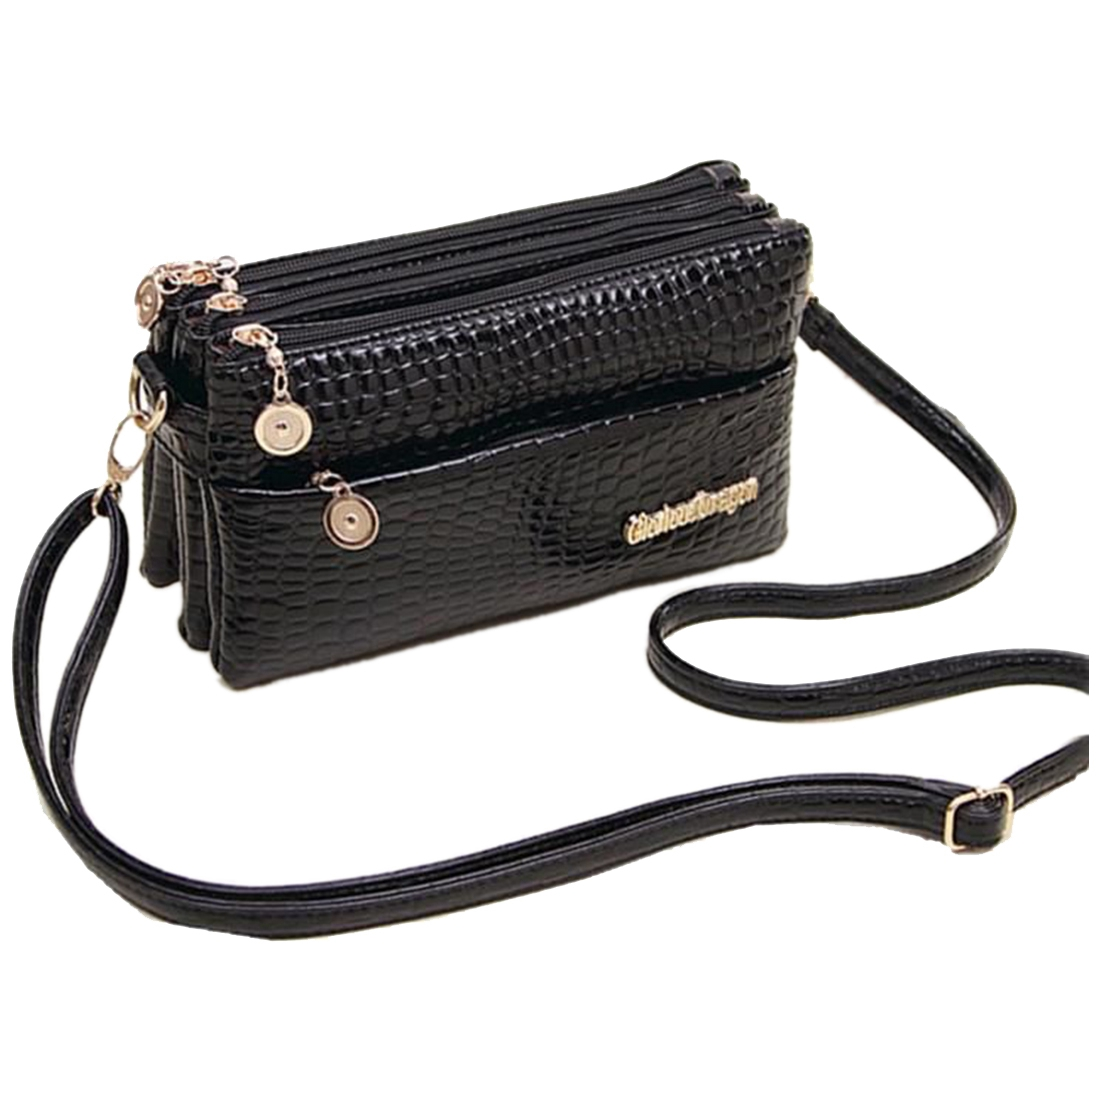 все цены на  ASDS Femininas Small Shoulder Bag Crocodile Pattern Fashion Bag for Women Crossbody Bags Clutch Handbag  онлайн